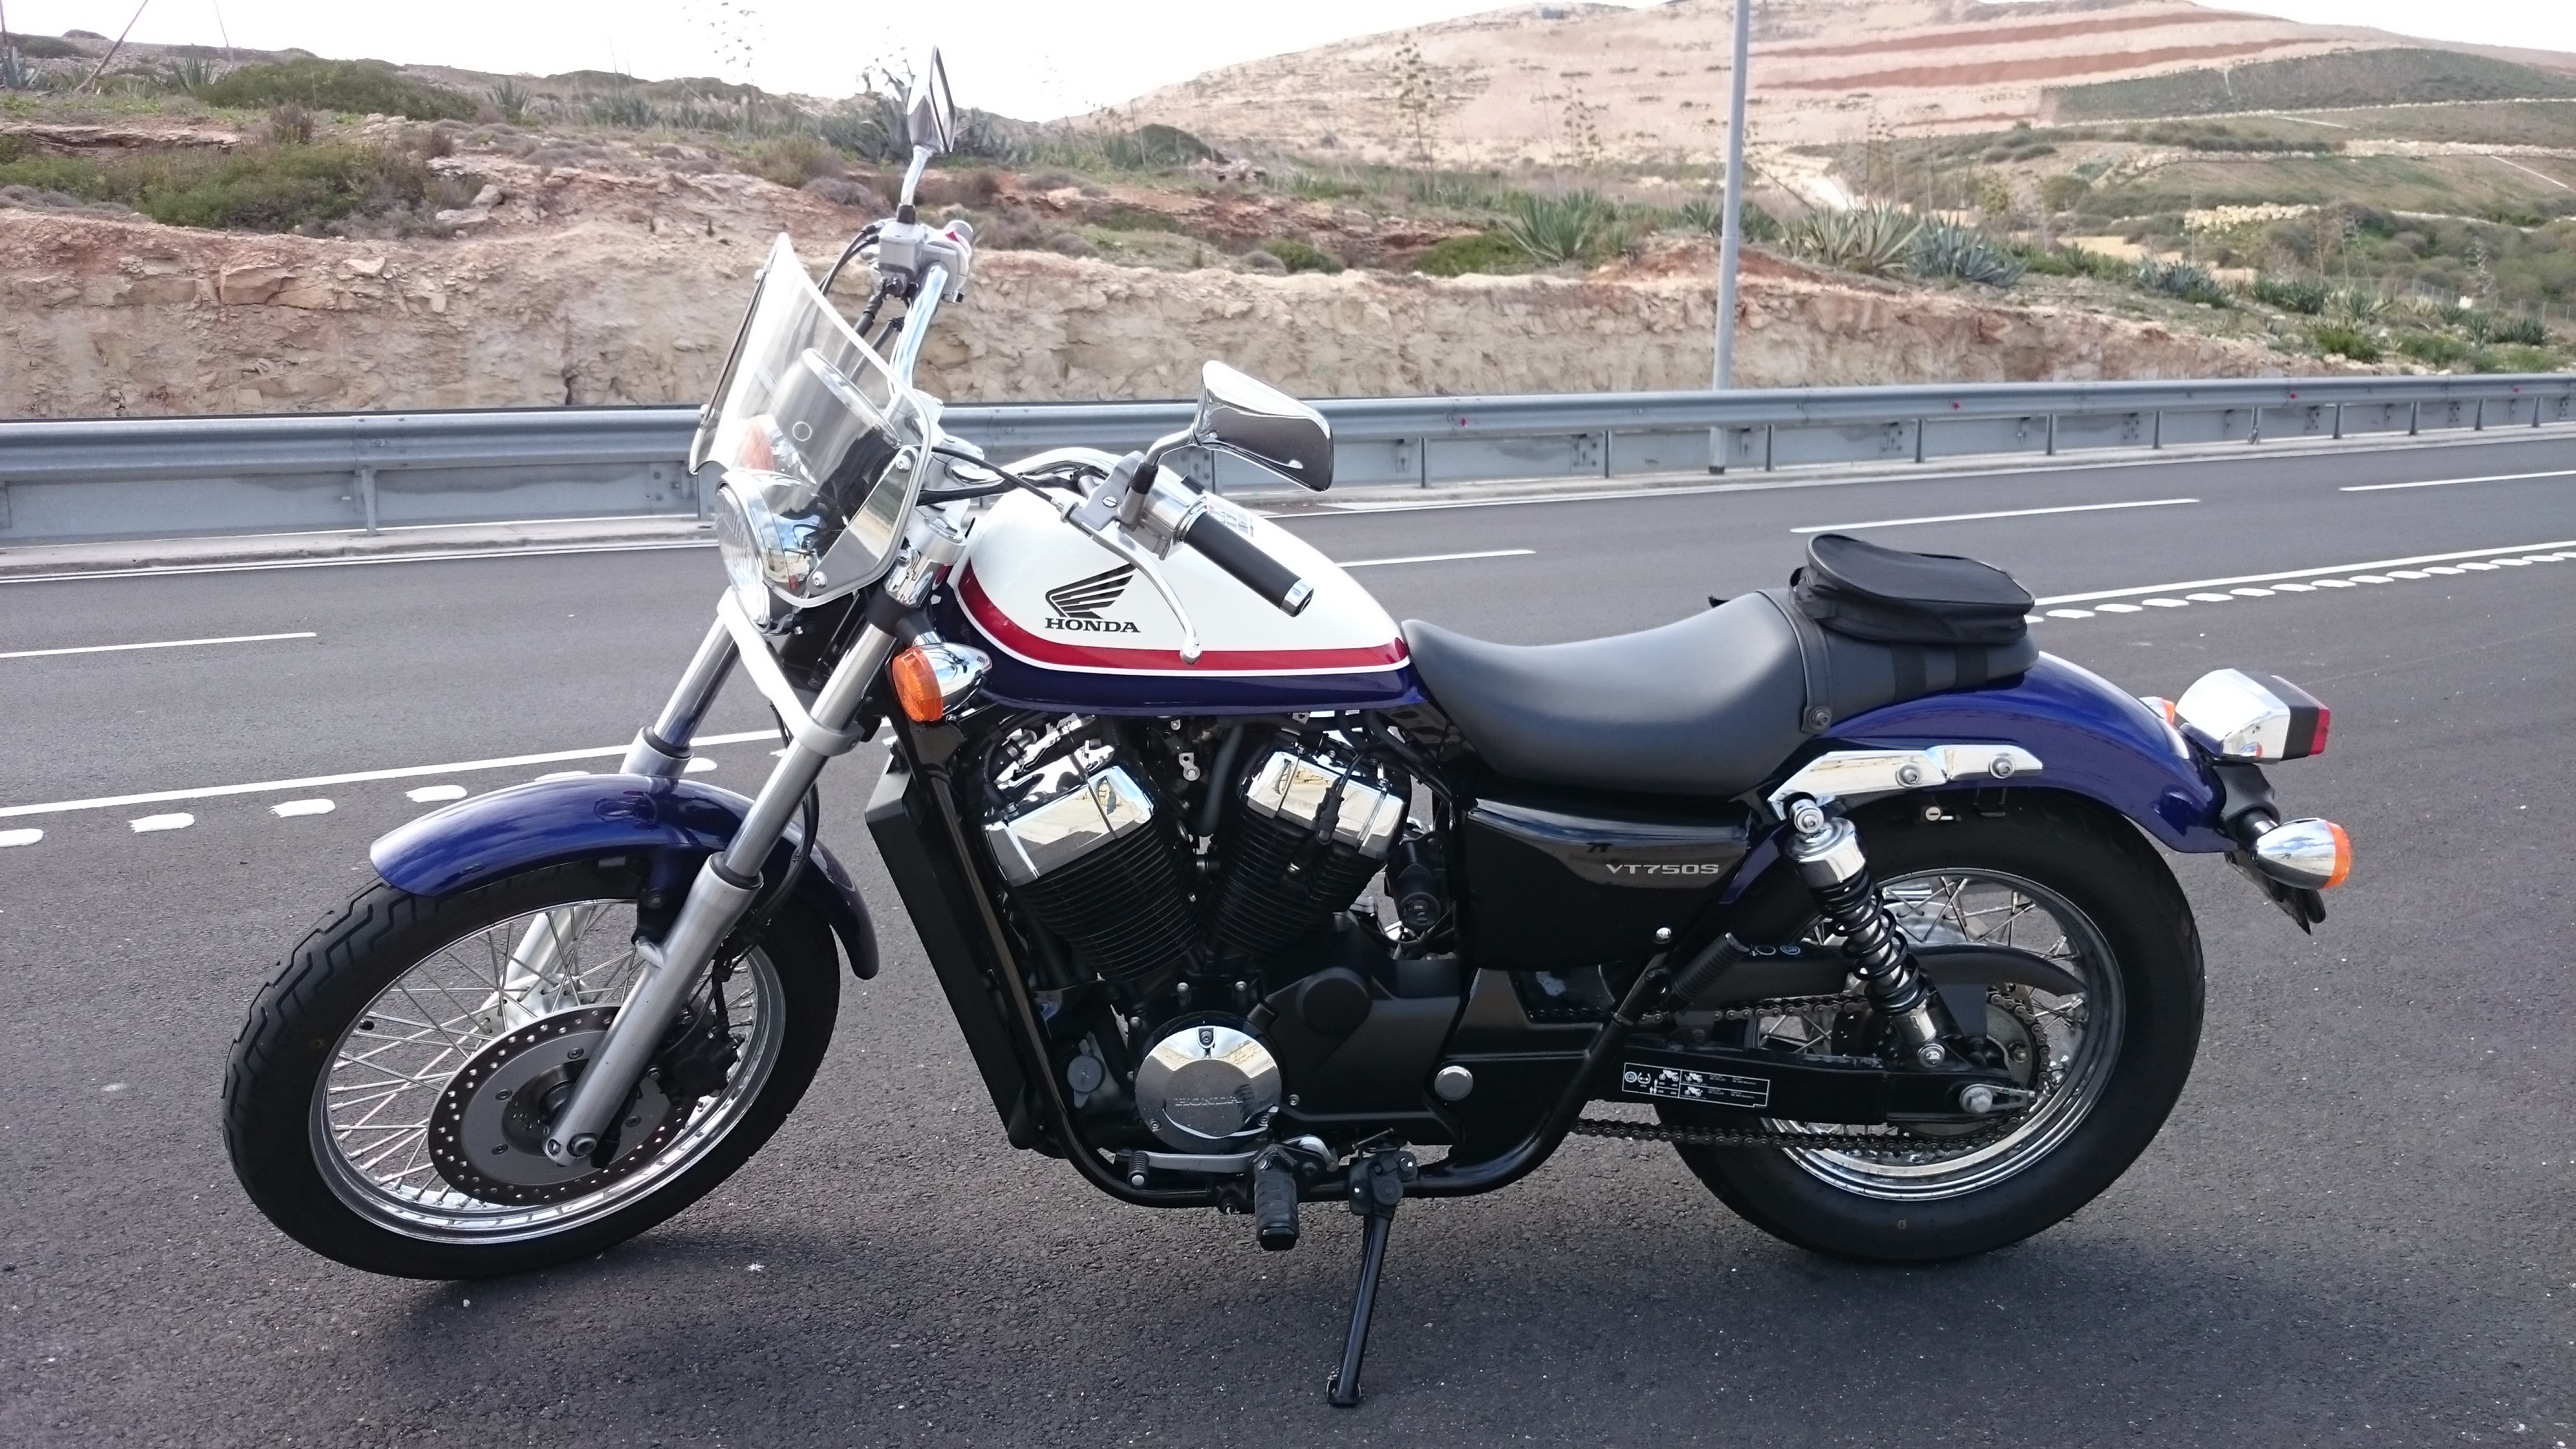 honda vt 750s shadow rs pics specs and list of seriess. Black Bedroom Furniture Sets. Home Design Ideas